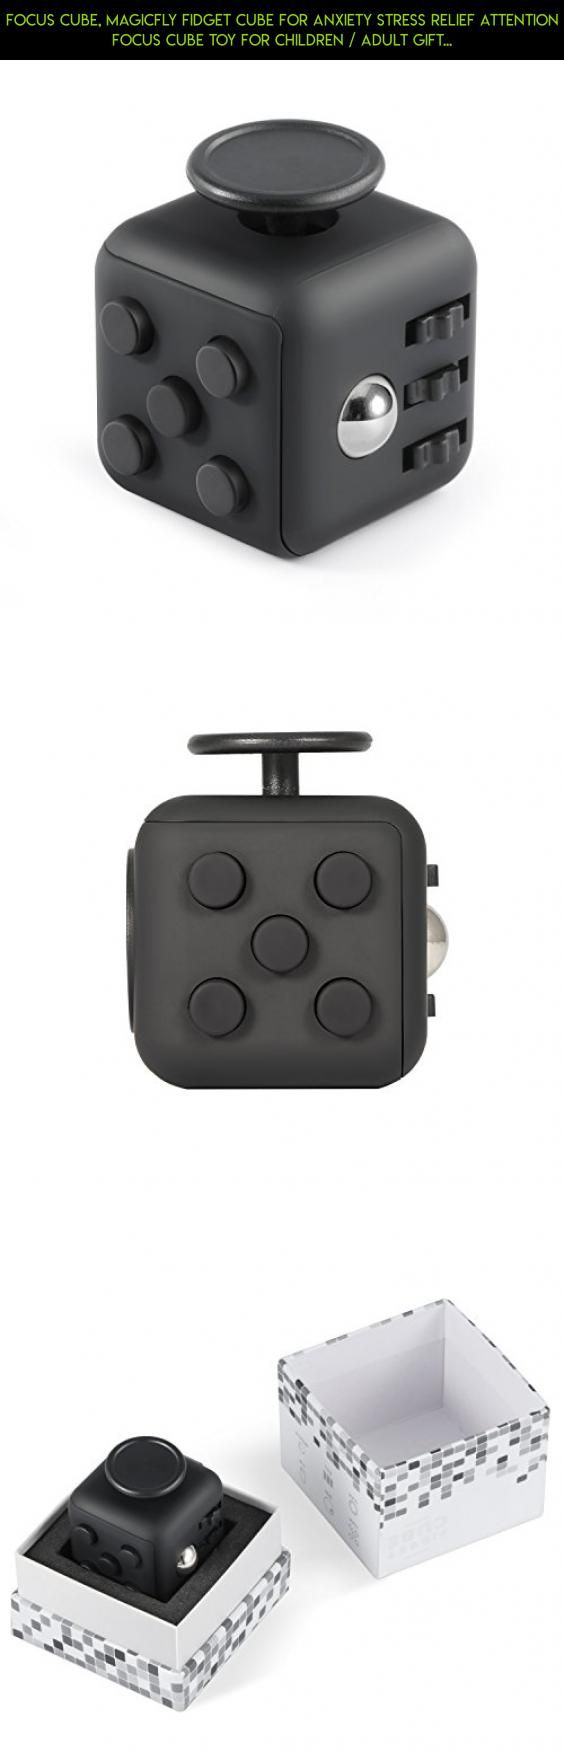 Focus Cube, Magicfly Fidget Cube For Anxiety Stress Relief Attention Focus Cube Toy For Children / Adult Gift ADHD, All Black #products #gadgets #tech #fidget #parts #cube #racing #camera #kit #plans #fpv #drone #technology #joystick #shopping